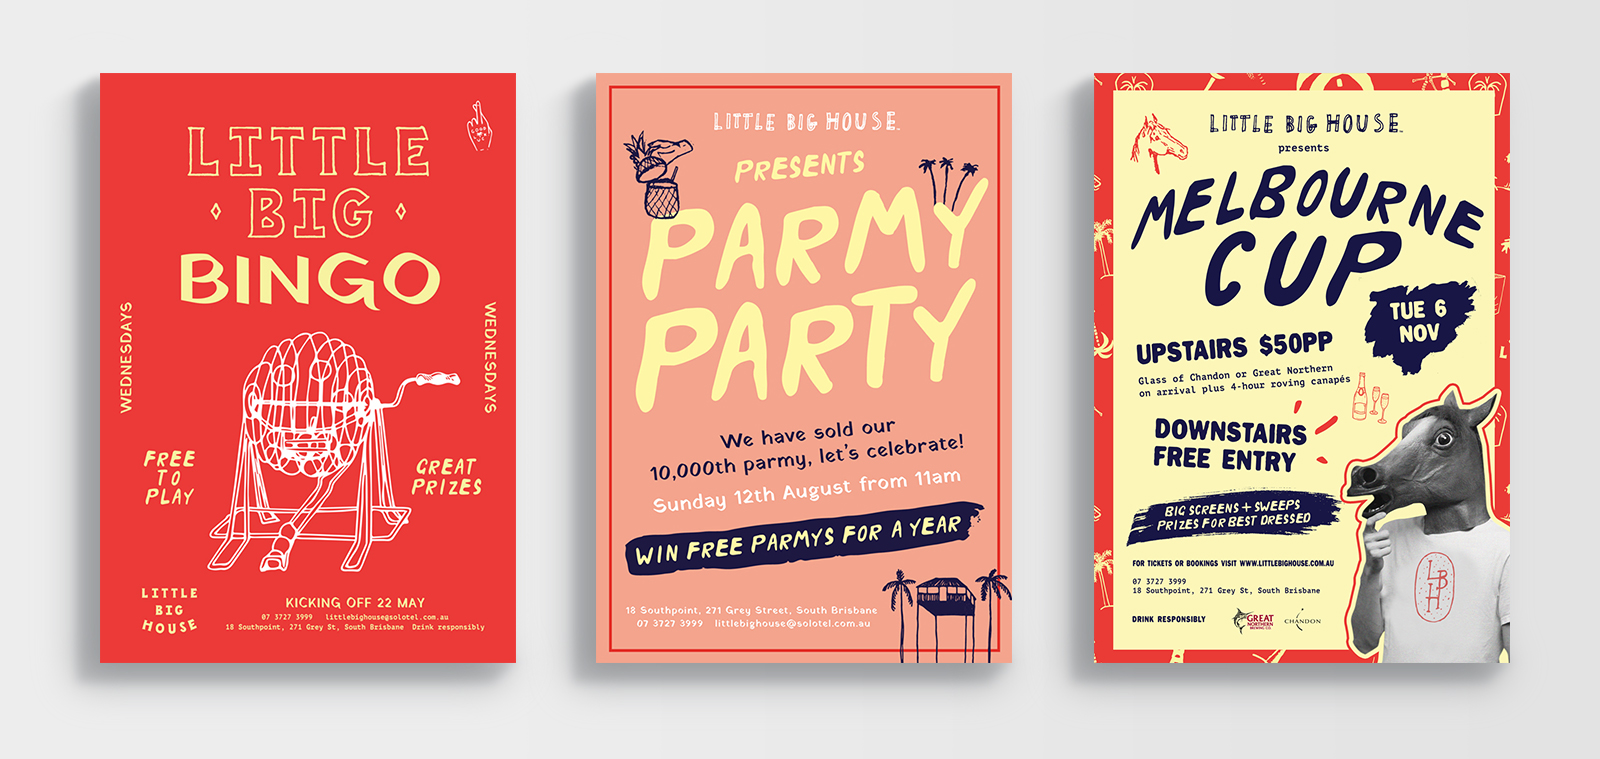 little big house brisbane bingo parmy party melbourne cup poster designs